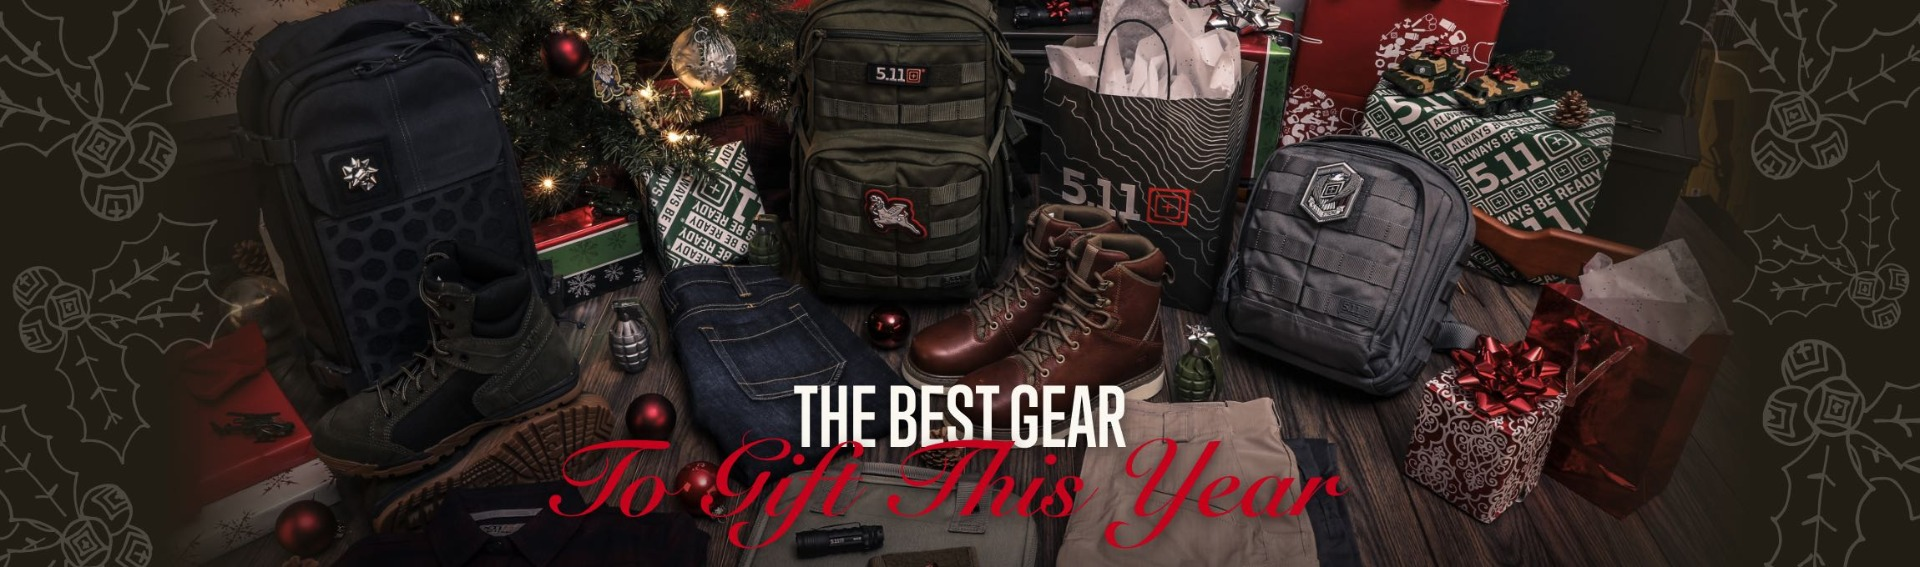 The Best Gear to Gift this Year